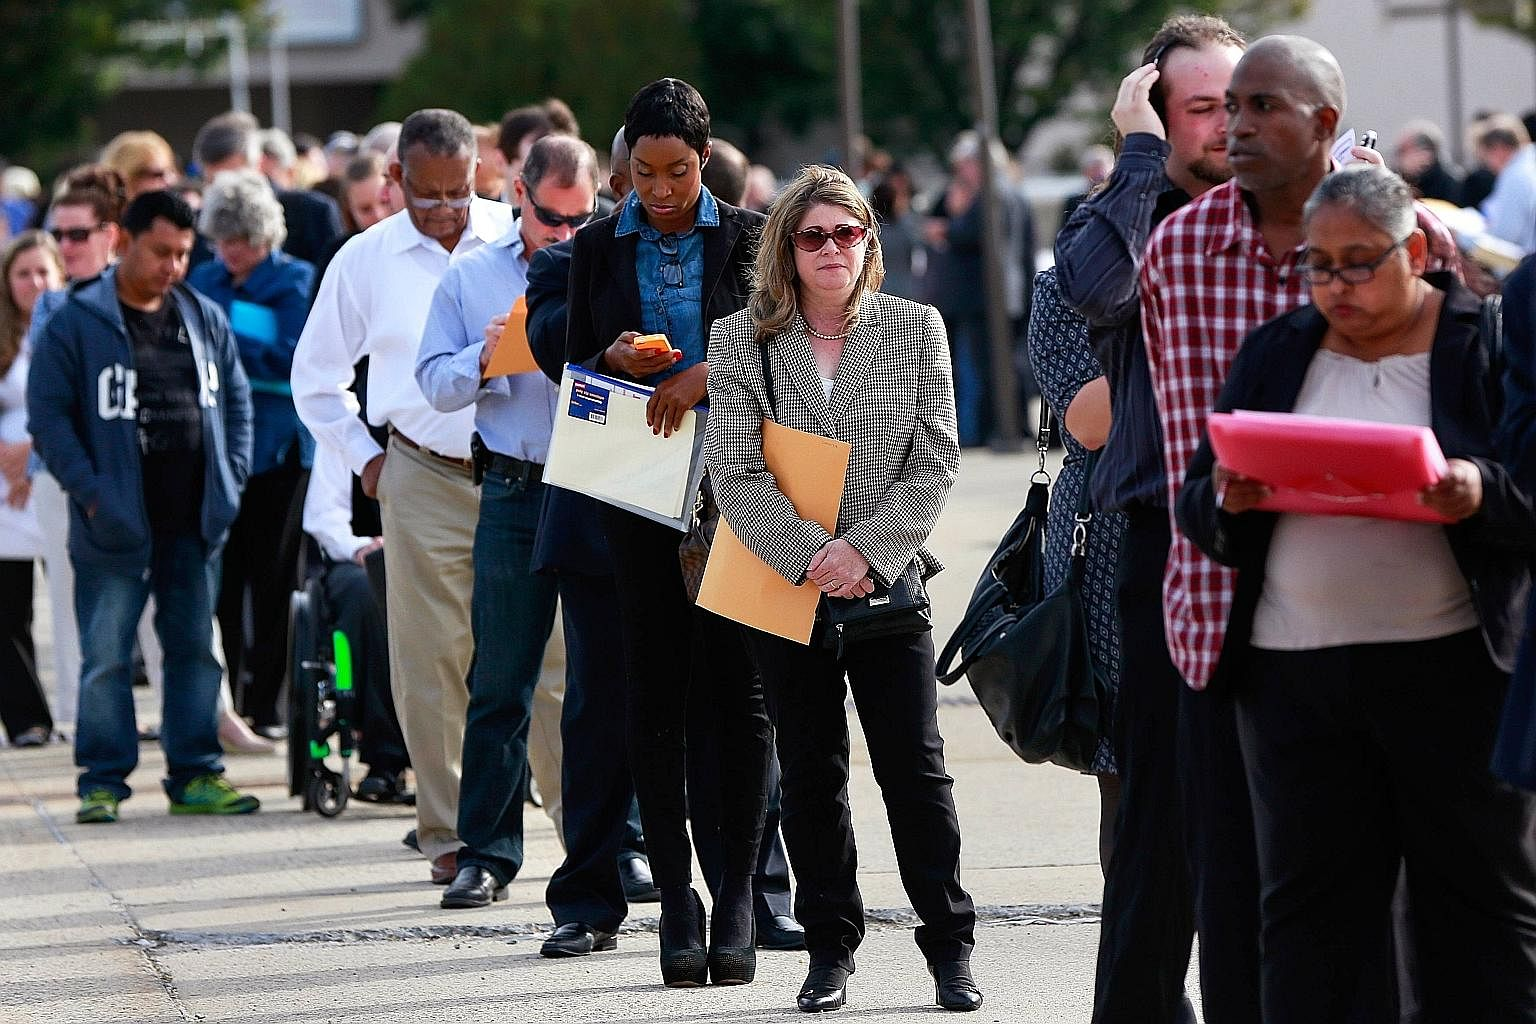 People waiting in line to enter a job fair in New York.Americans have been moving away from a system in which a good job with a generous employer was the key to a good life, to a new system in which even people with low-wage jobs can have access to t